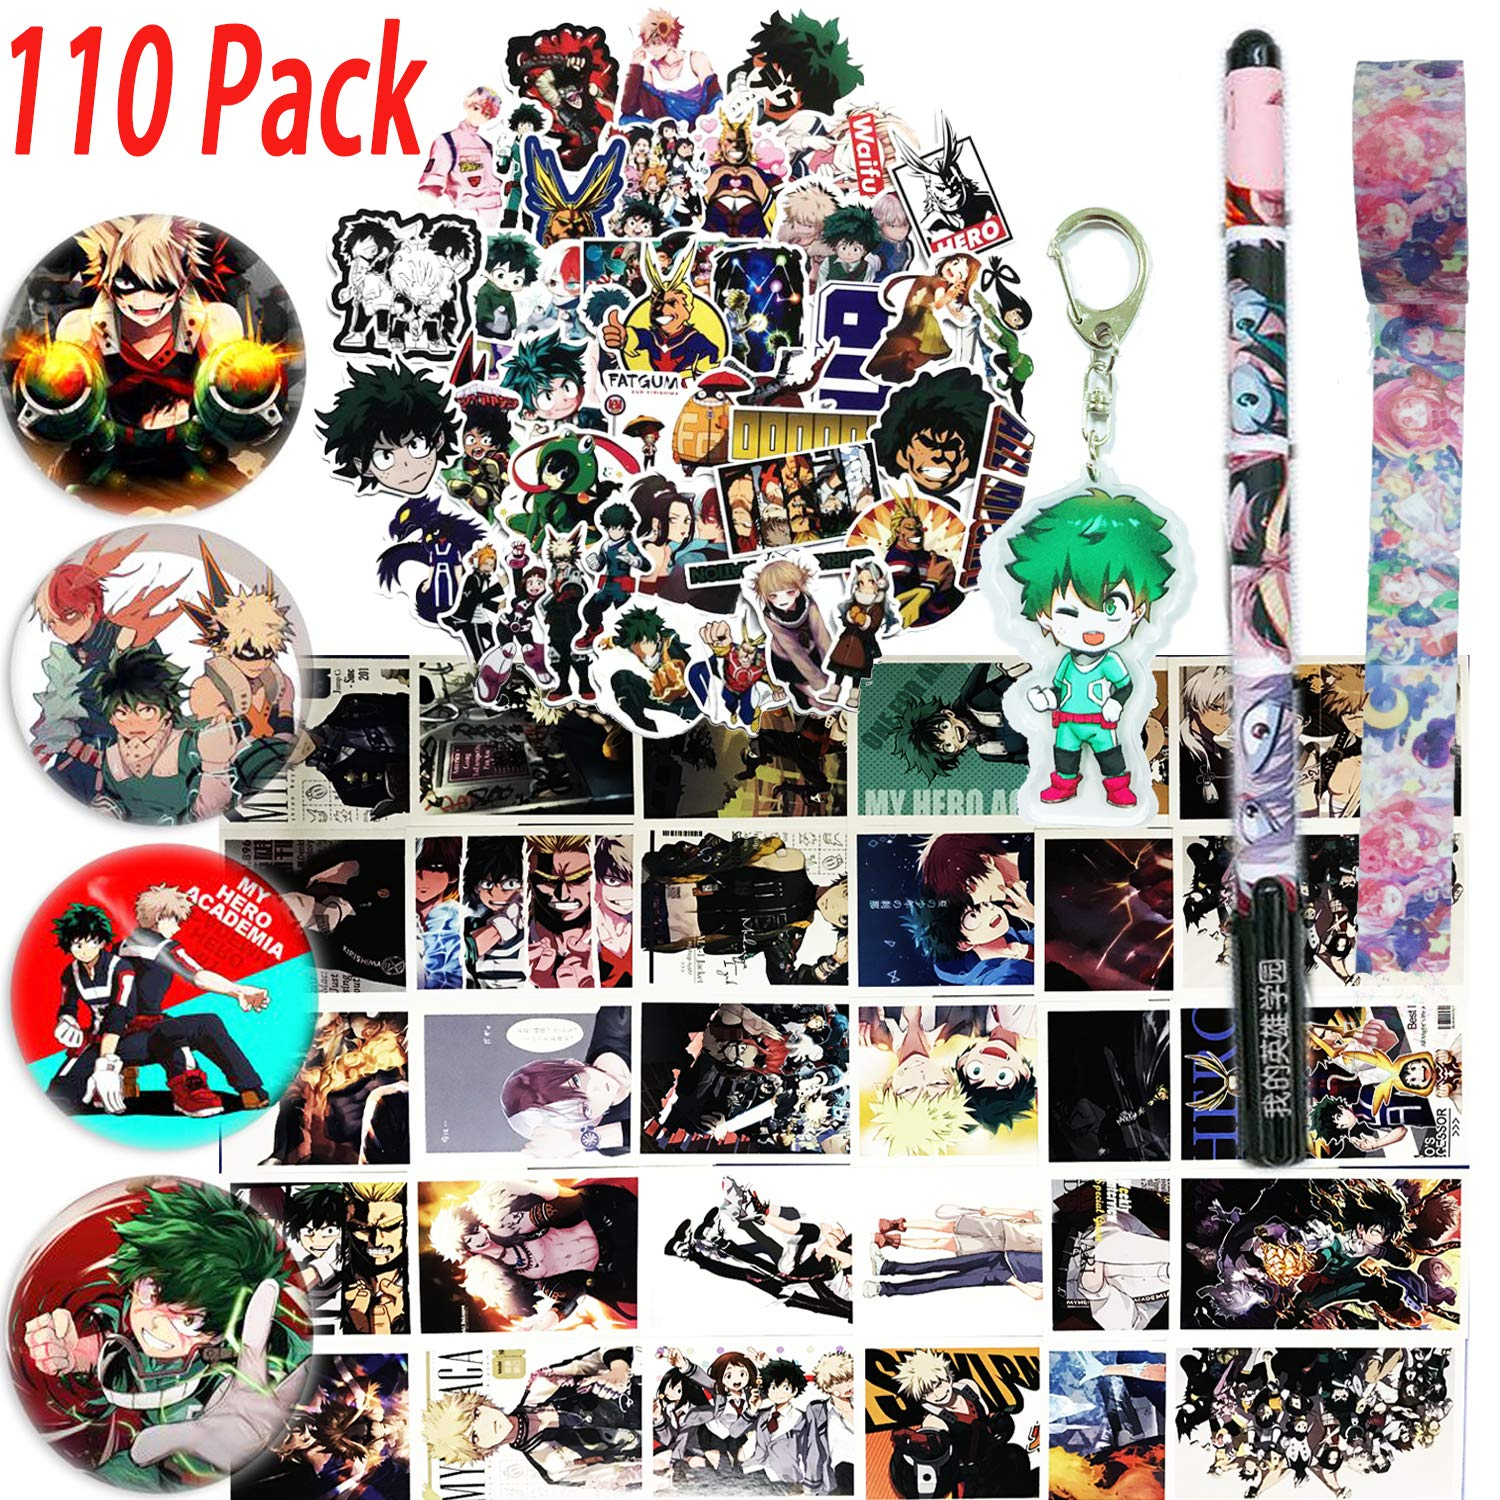 1 Phone Ring Holder 2 Button Pins 73 Cartoon Laptop Stickers KINON My Hero Academia Gift Sets 1 Keychain 1 Drawstring Bag 1 Face Mask